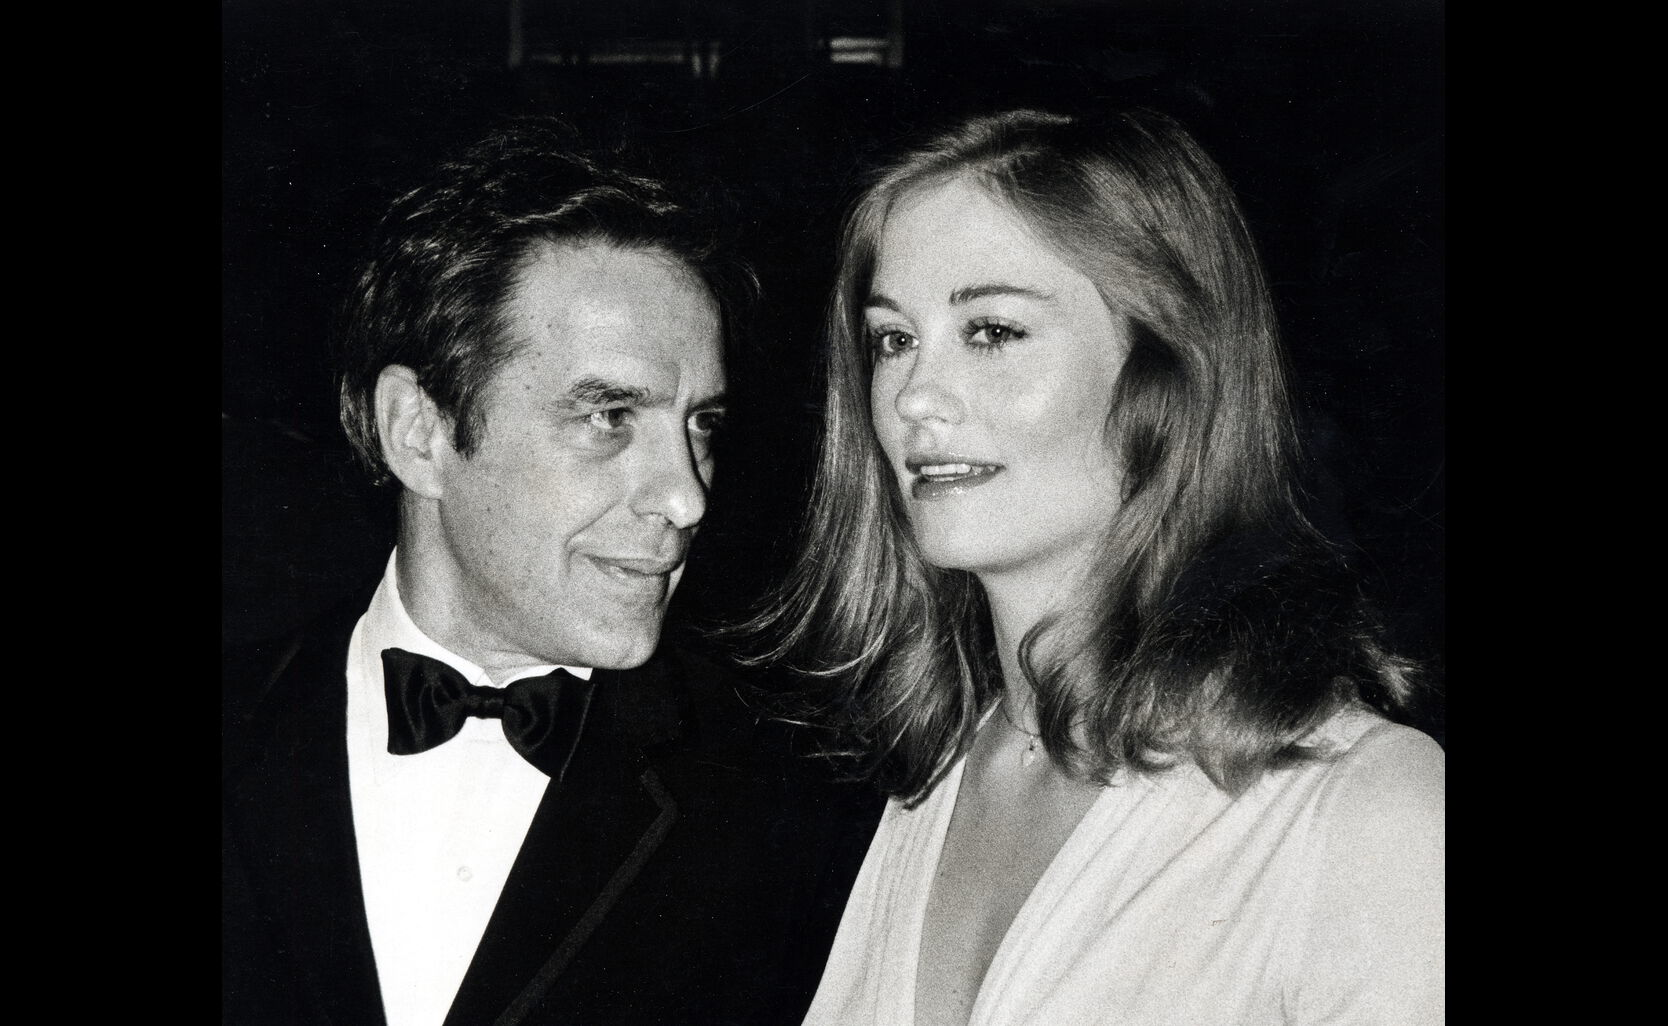 John Cassavetes and Cybil Shepherd at the 34th Golden Globes, 1977